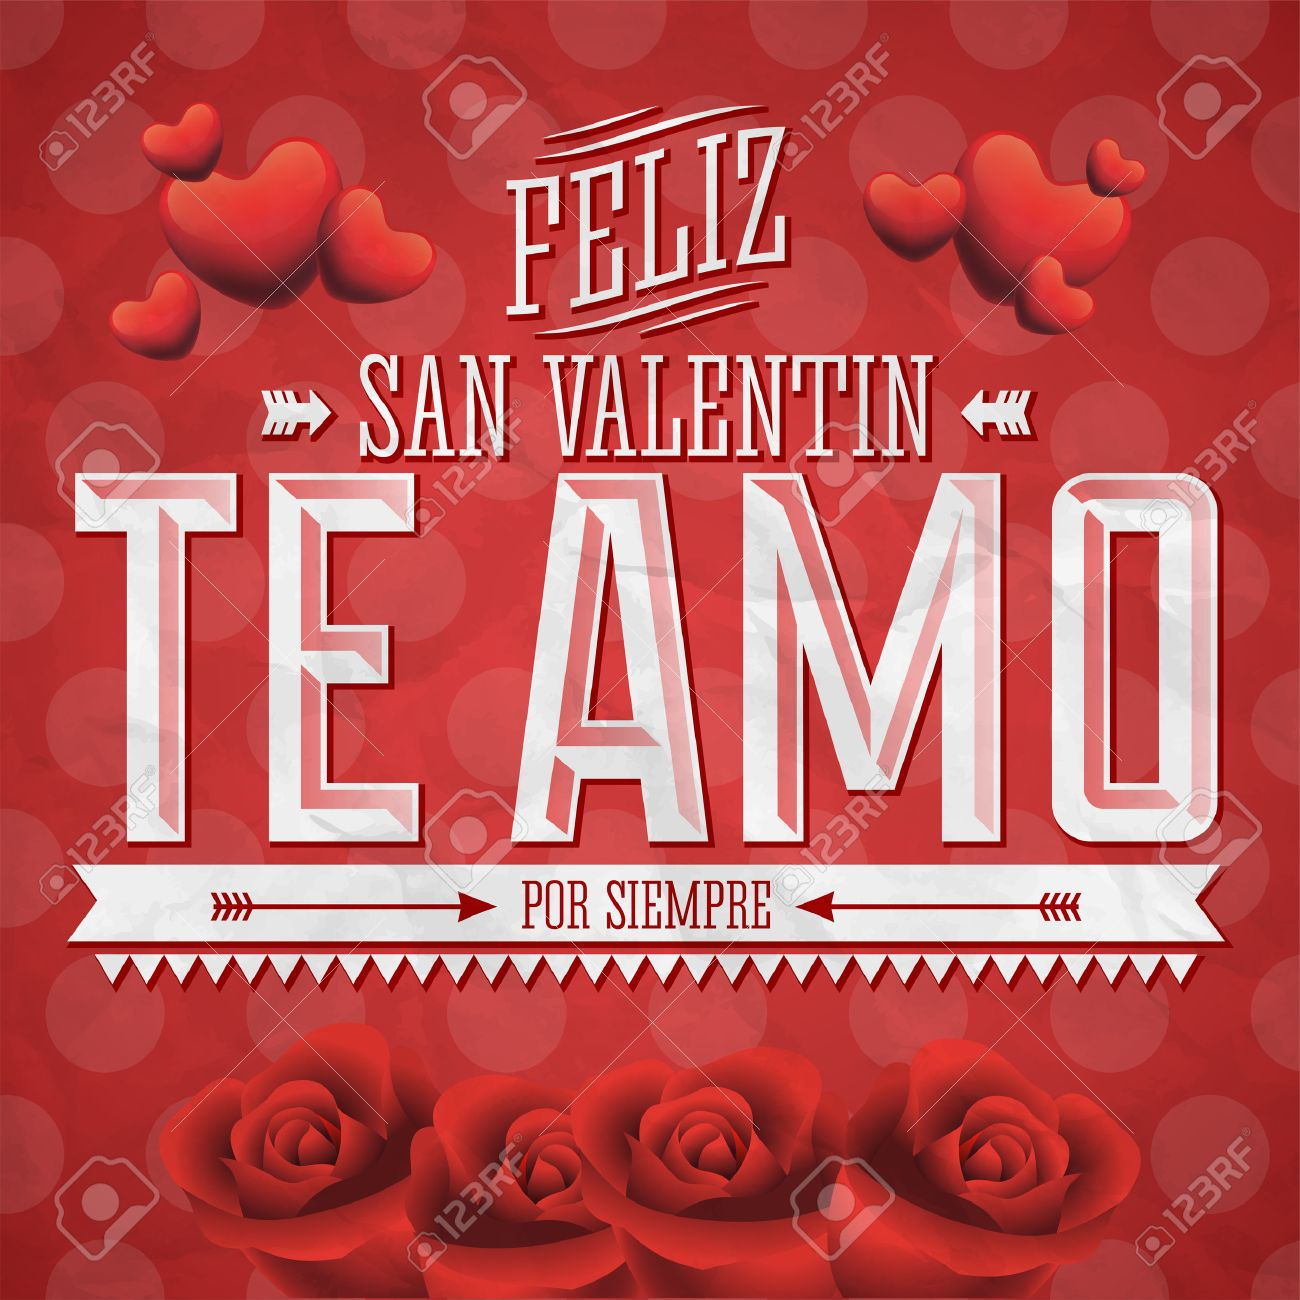 Te Amo Feliz San Valentin I Love You Happy Valentines Day – Saint Valentine Card